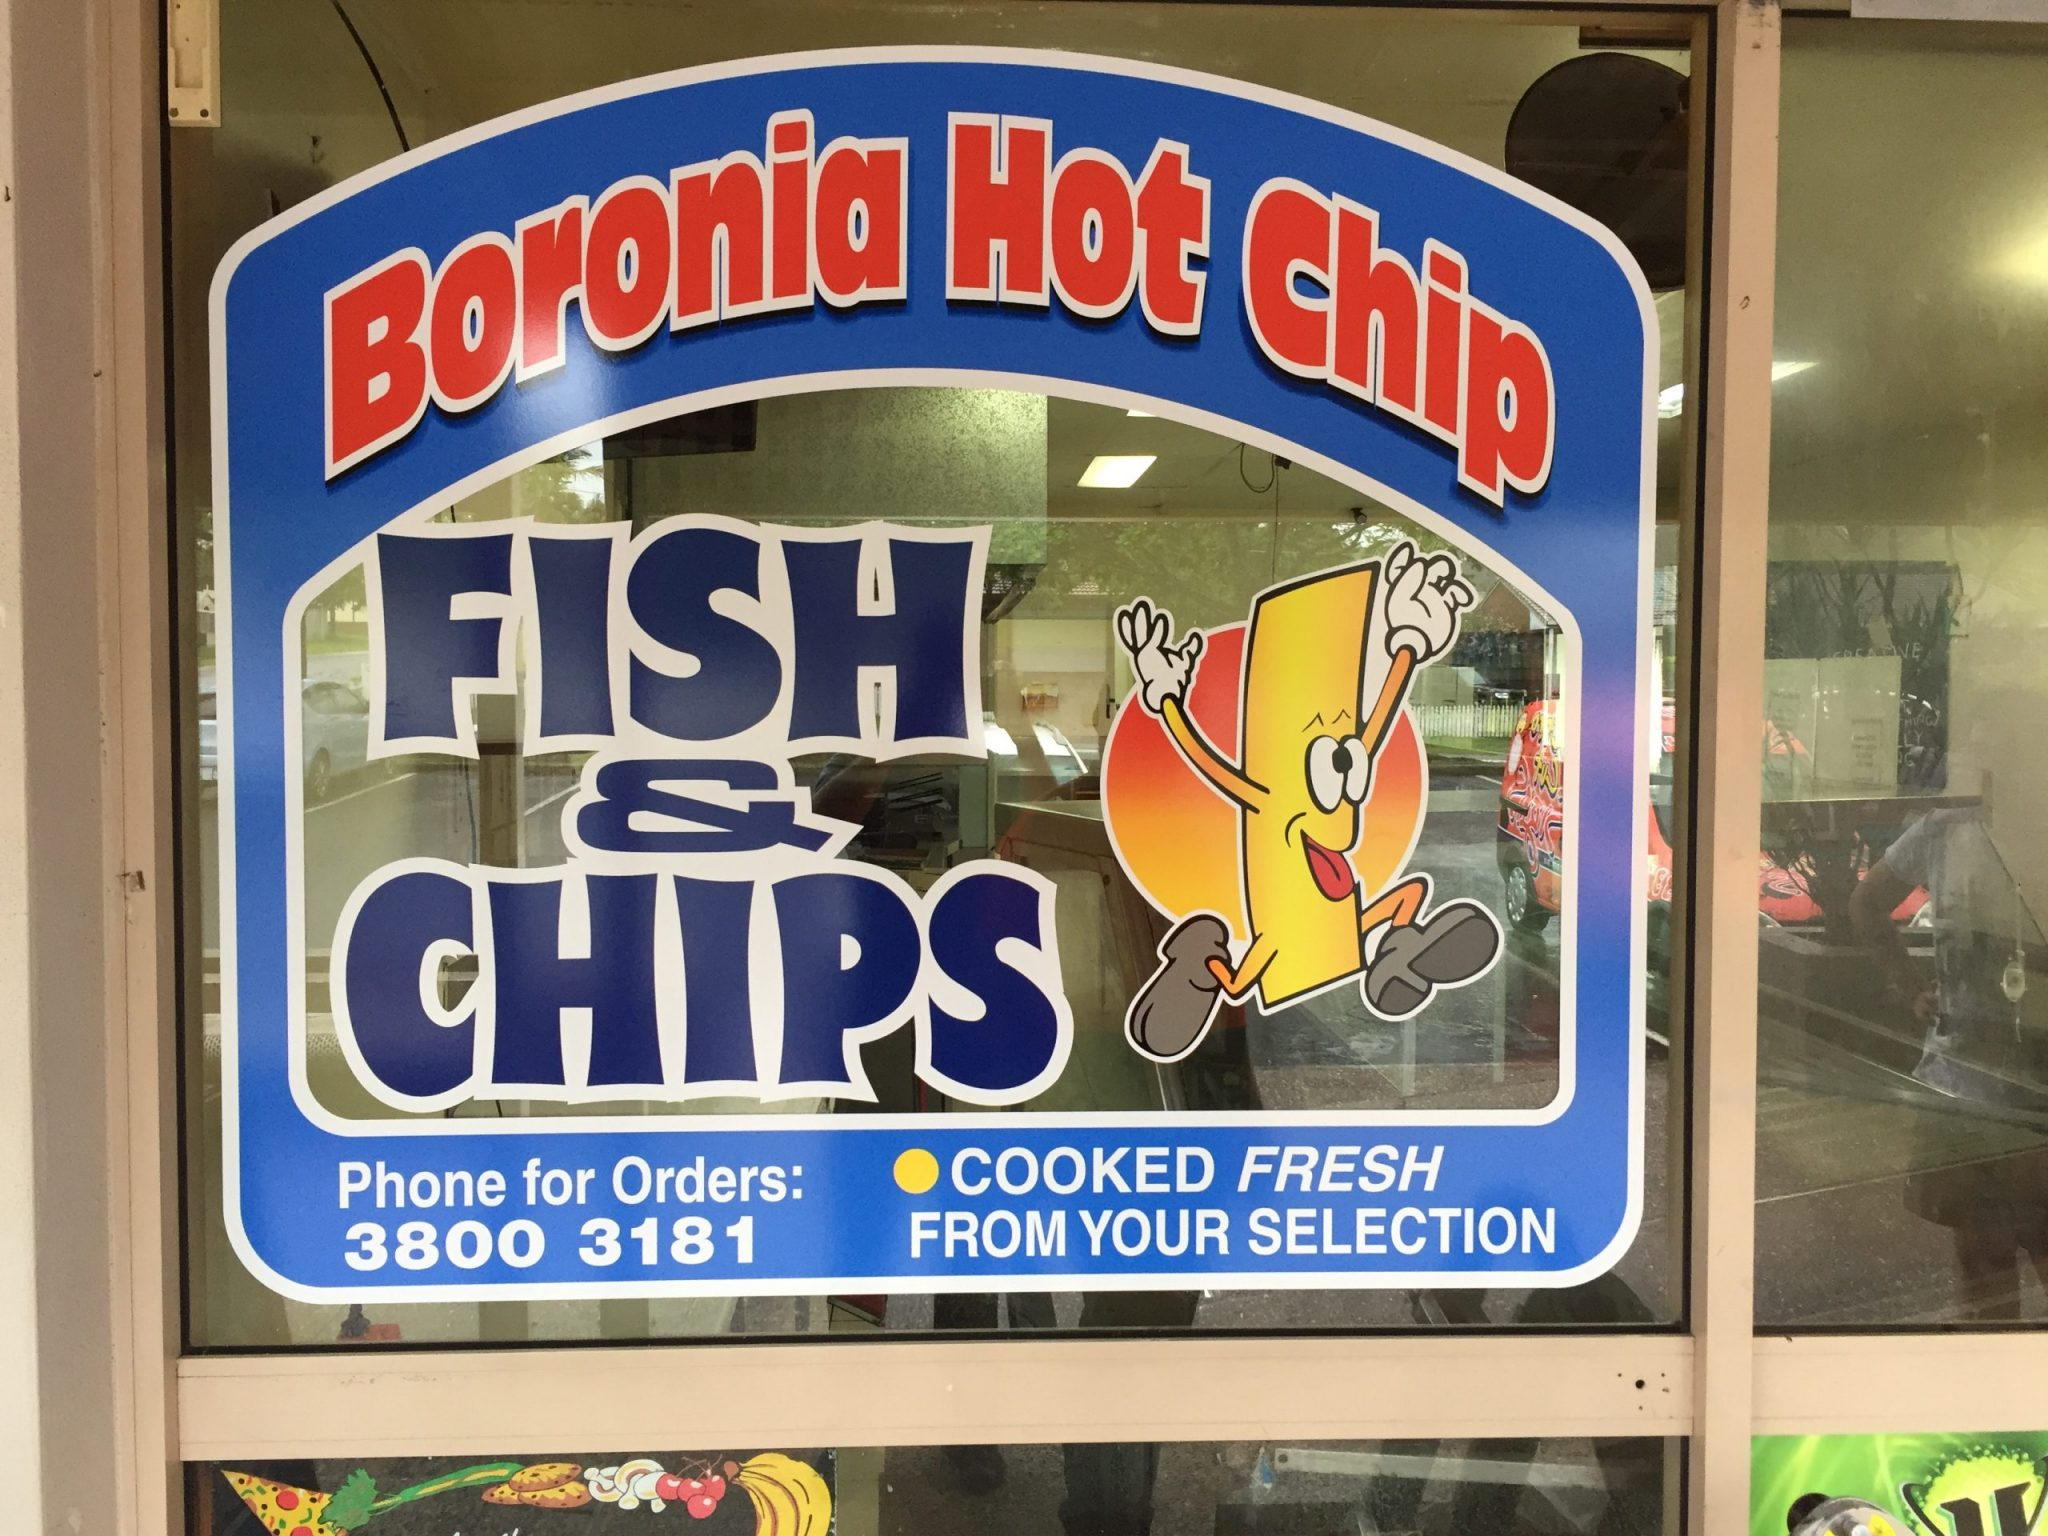 The hot chip2